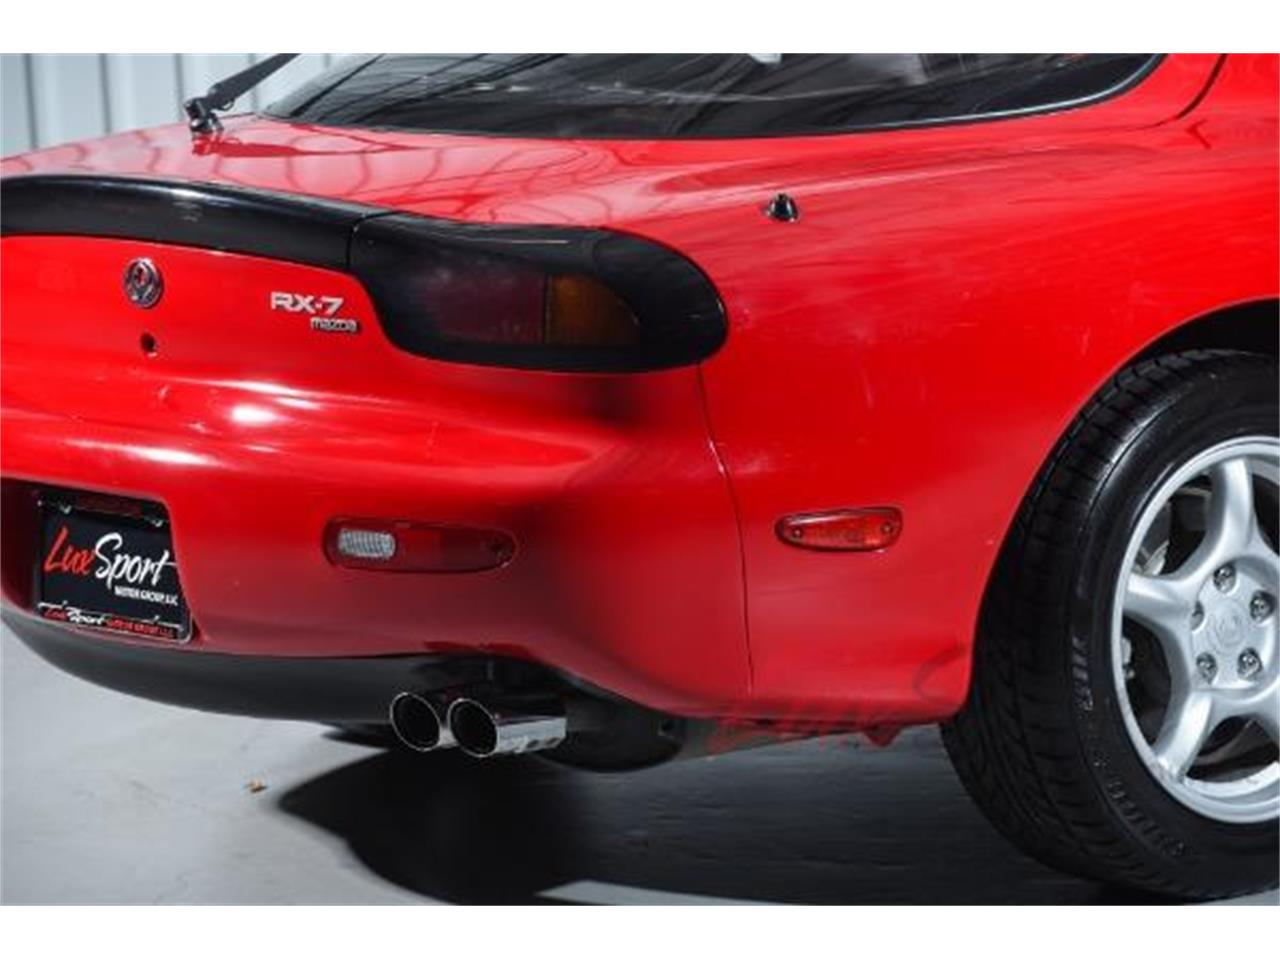 Large Picture of '93 Mazda RX-7 located in New York - $34,995.00 Offered by LuxSport Motor Group, LLC - MO02